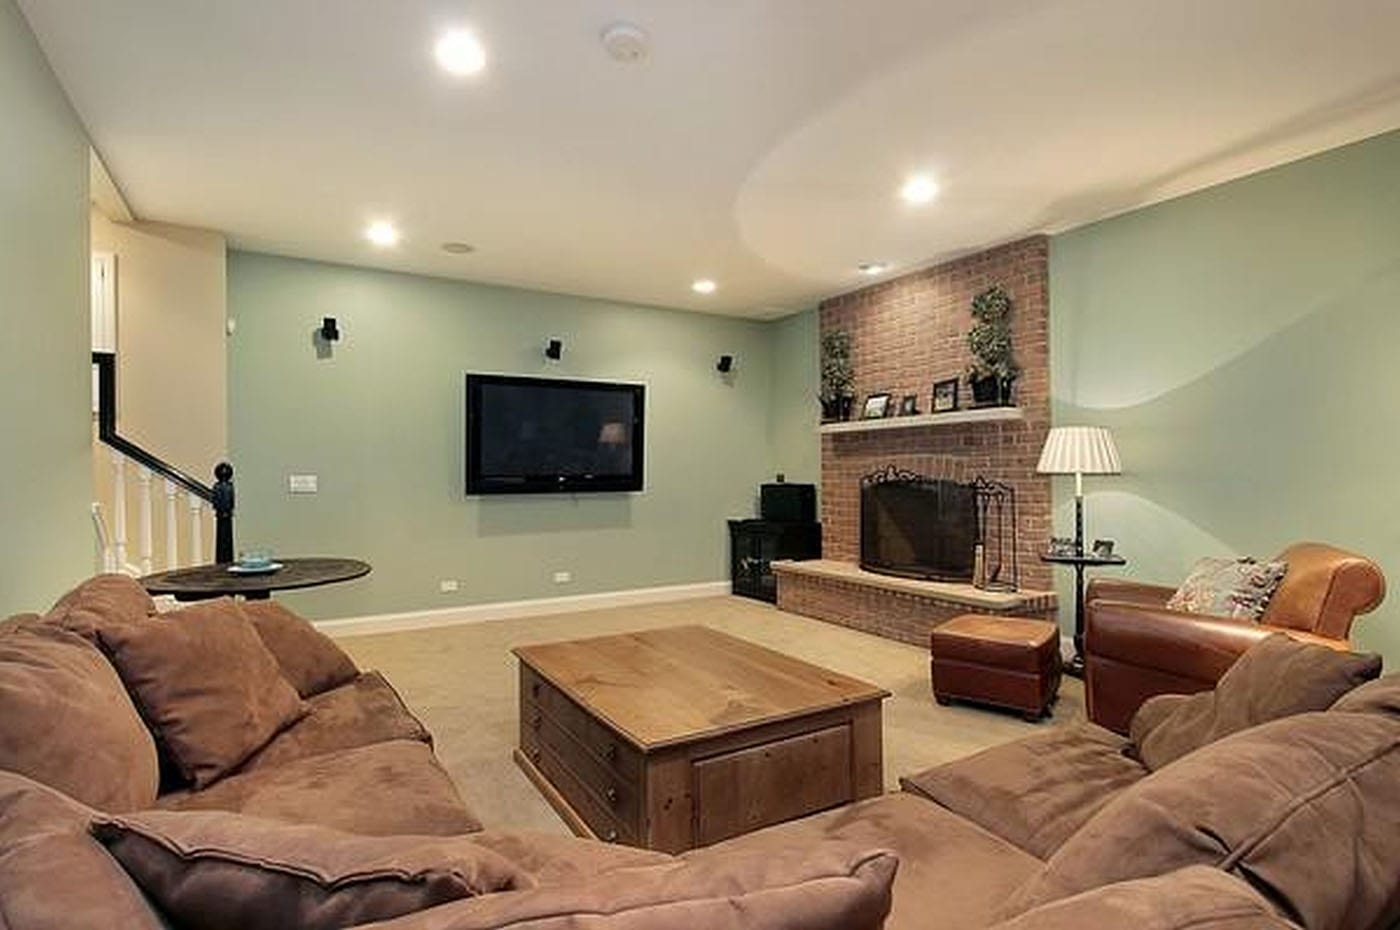 Expand your living space to include a comfortable and private room for watching television, talking with friends, etc.